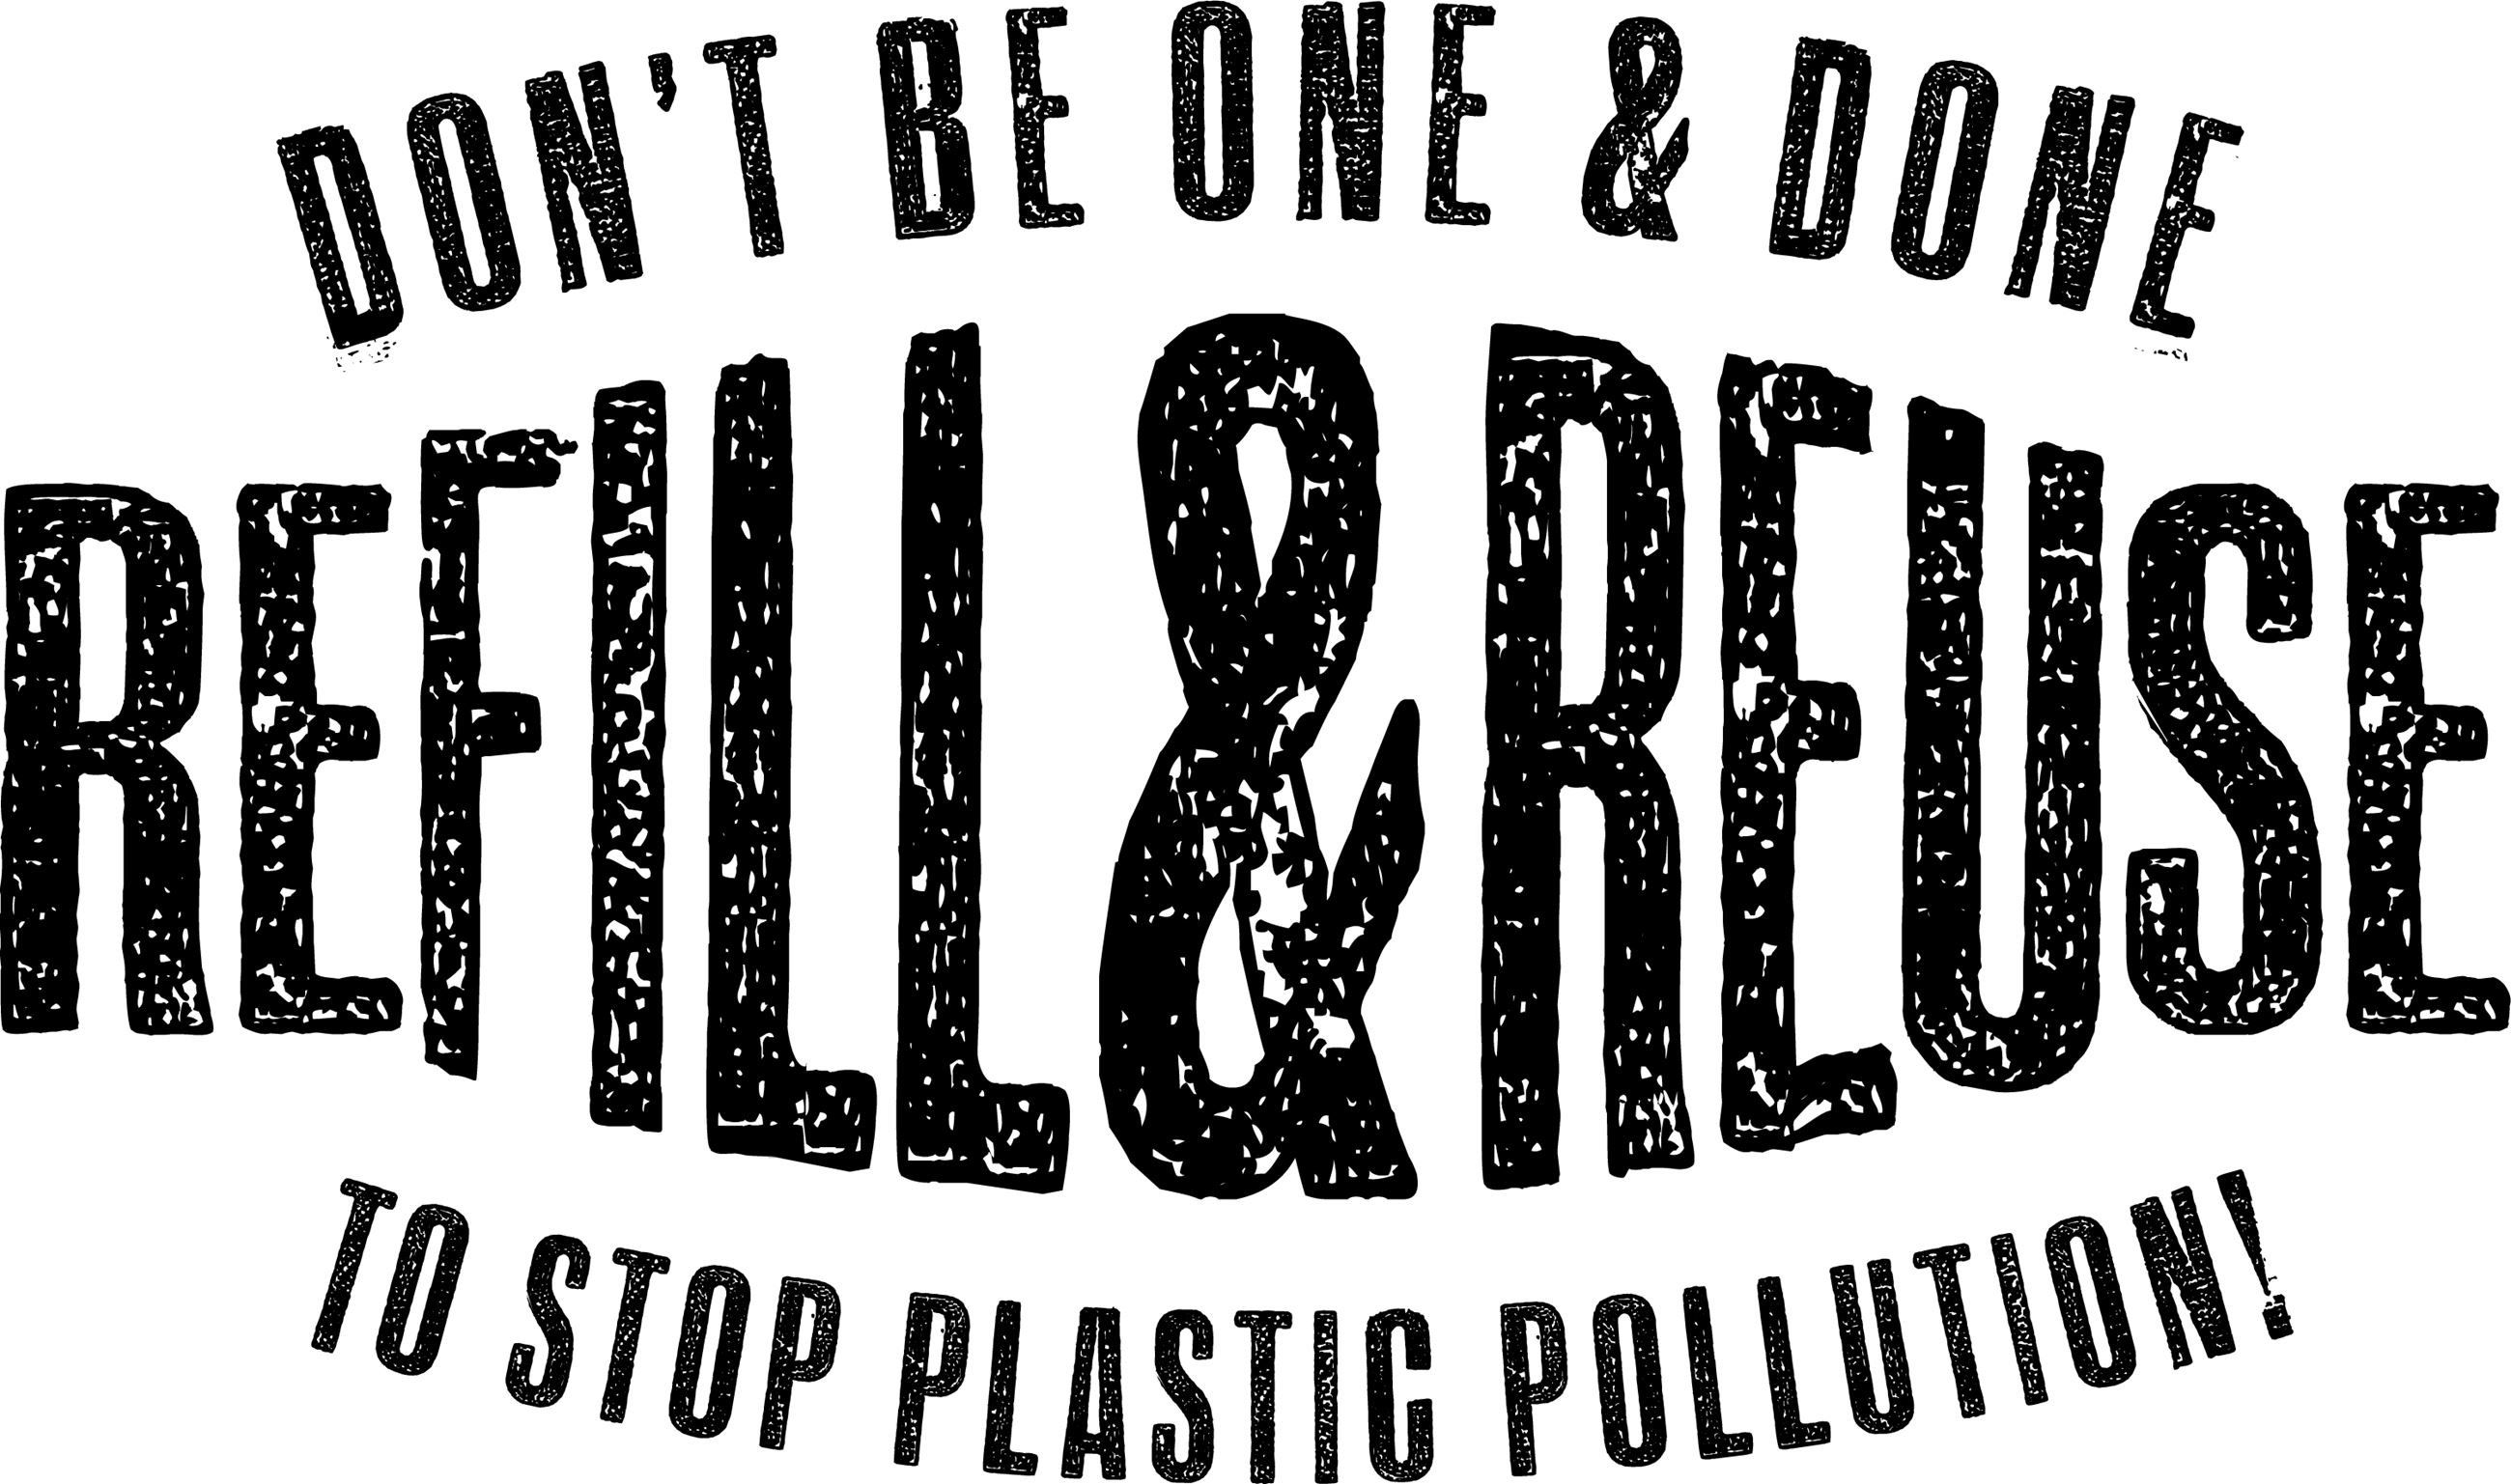 Refill and Reuse to Stop Plastic Pollution